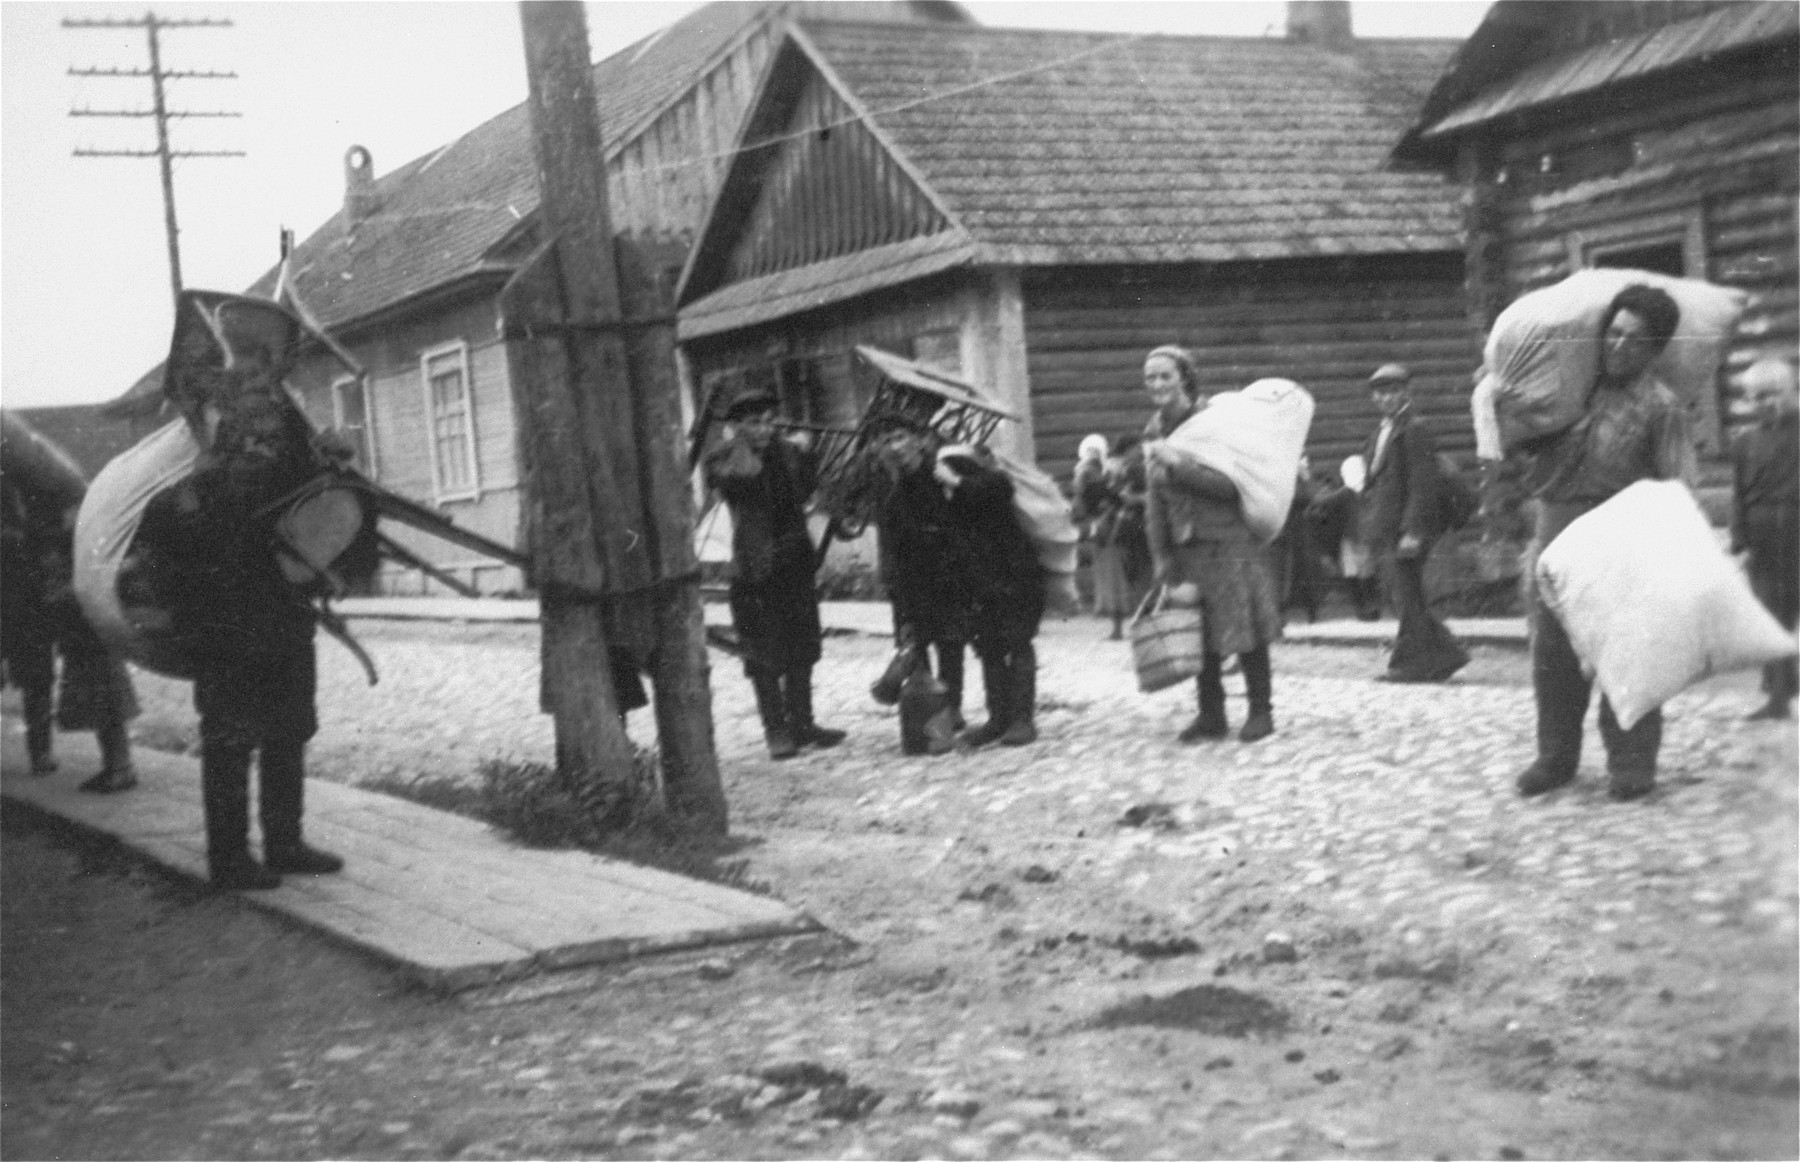 Jews in the Kovno ghetto carry furniture and large bundles.  They are probably moving to new homes following a reduction of the ghetto's borders.